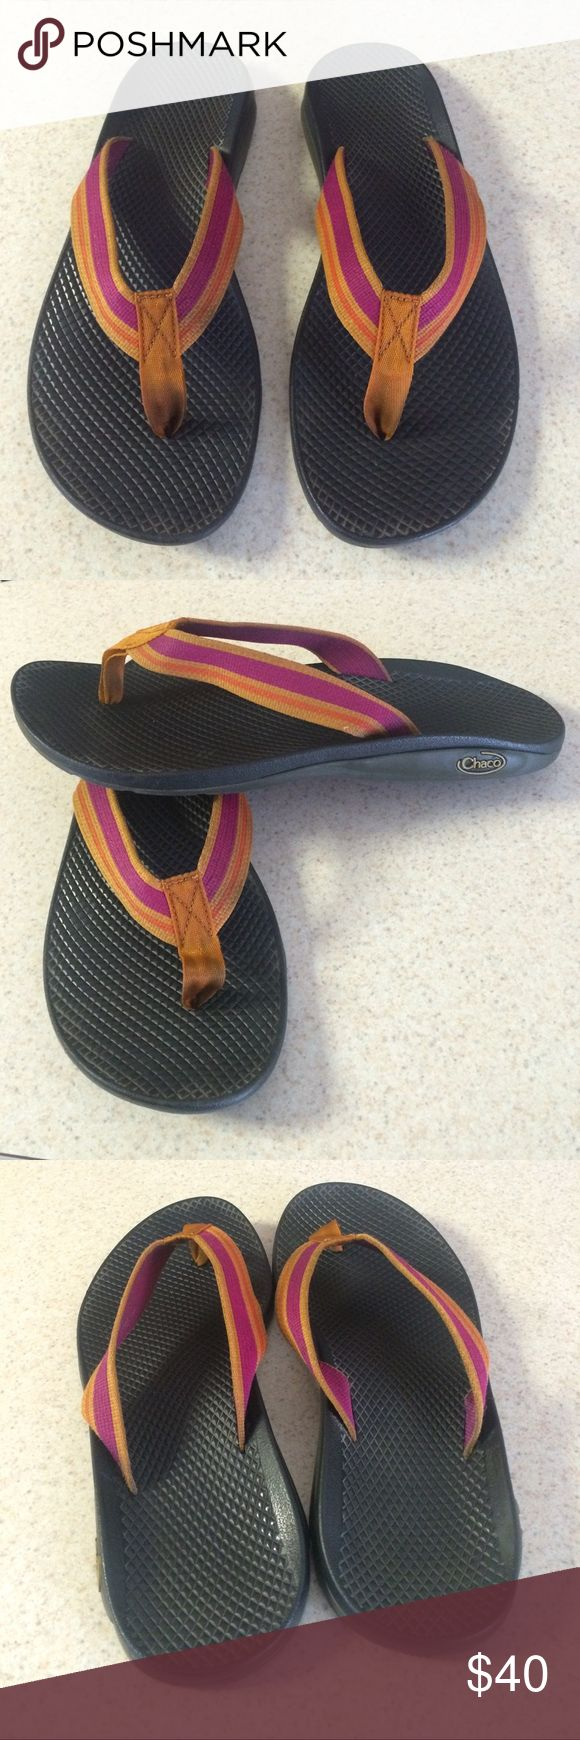 ❗️ weekend sale❗️was $40 Chaco Sandals Beautiful vibram sandals from CHACO, great arch, synthetic upper, rubber outsole, only worn twice, basically brand new. Chaco Shoes Sandals